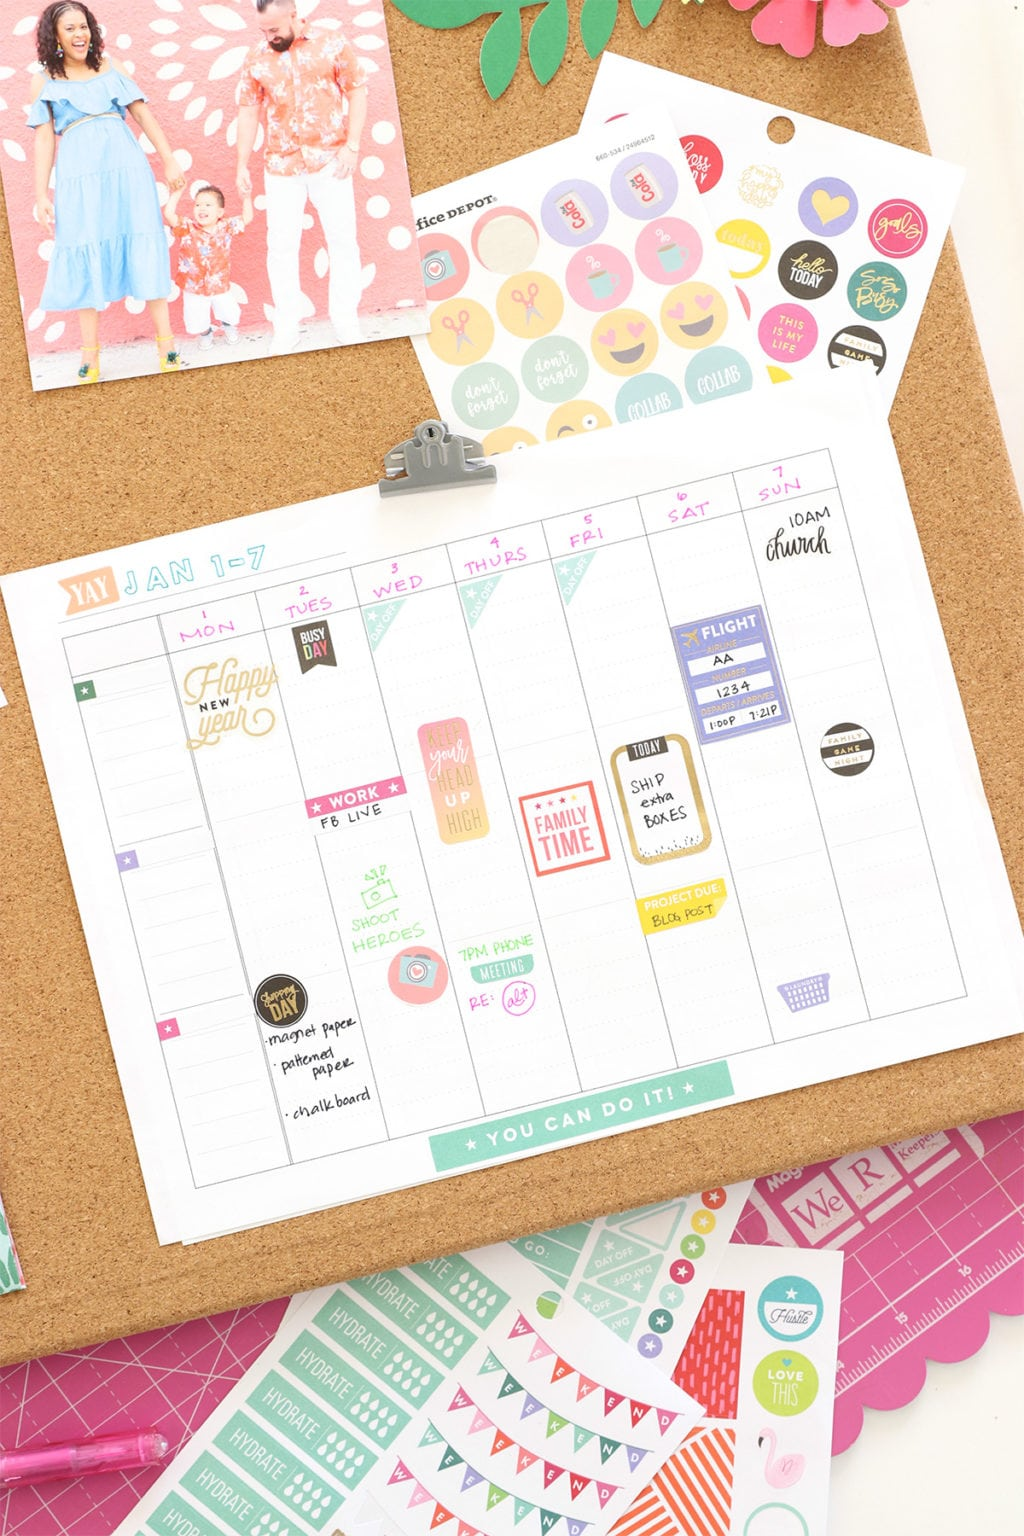 Print Your Own Wall Calendar | damask love